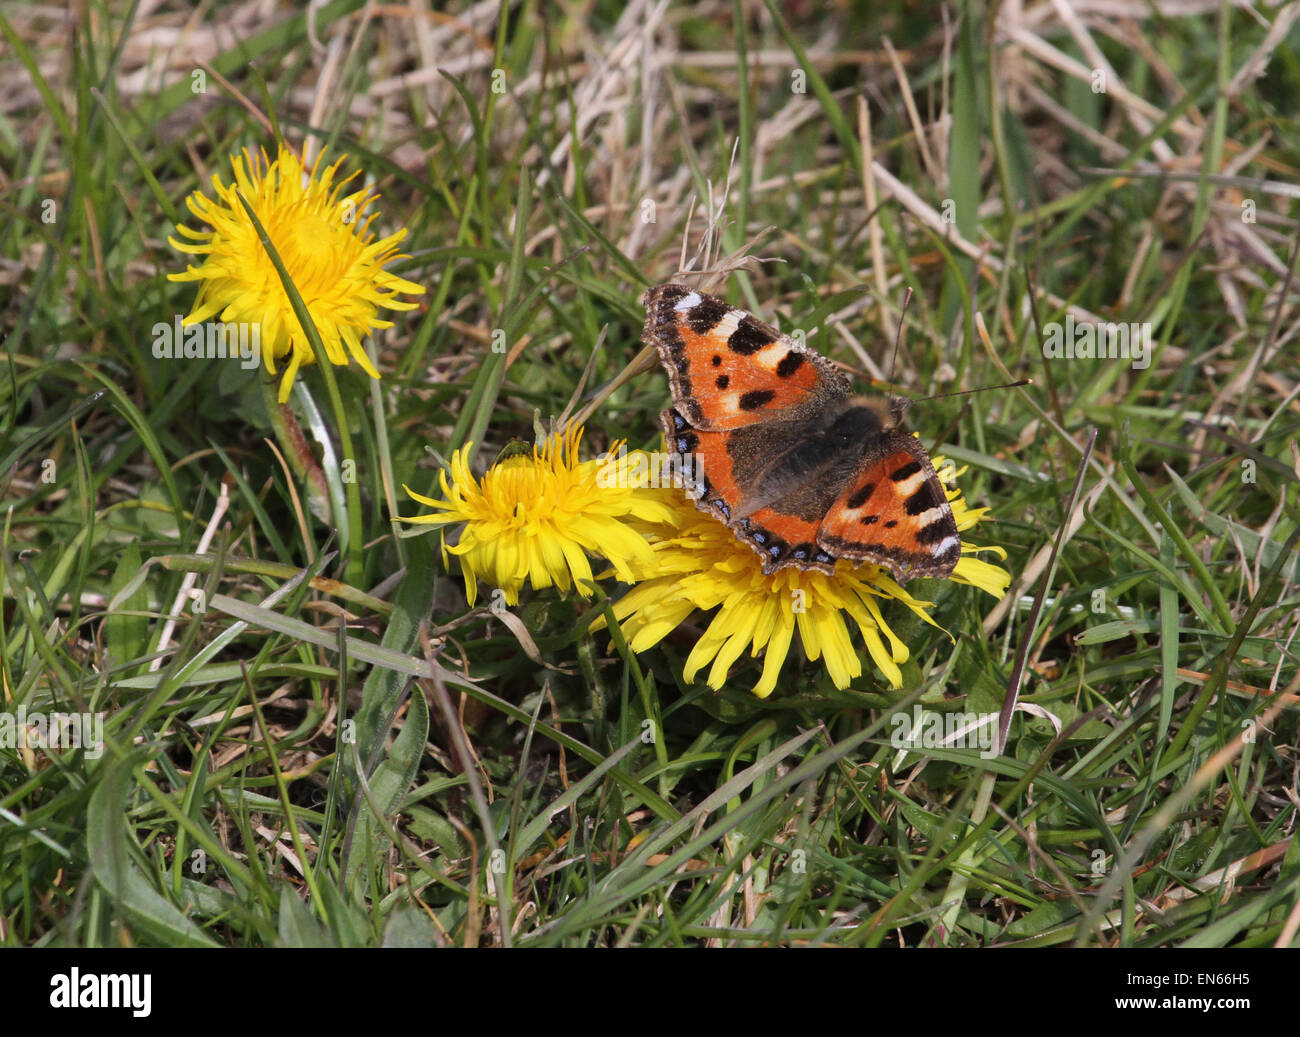 Small Tortoiseshell butterfly on Dandelions - Stock Image